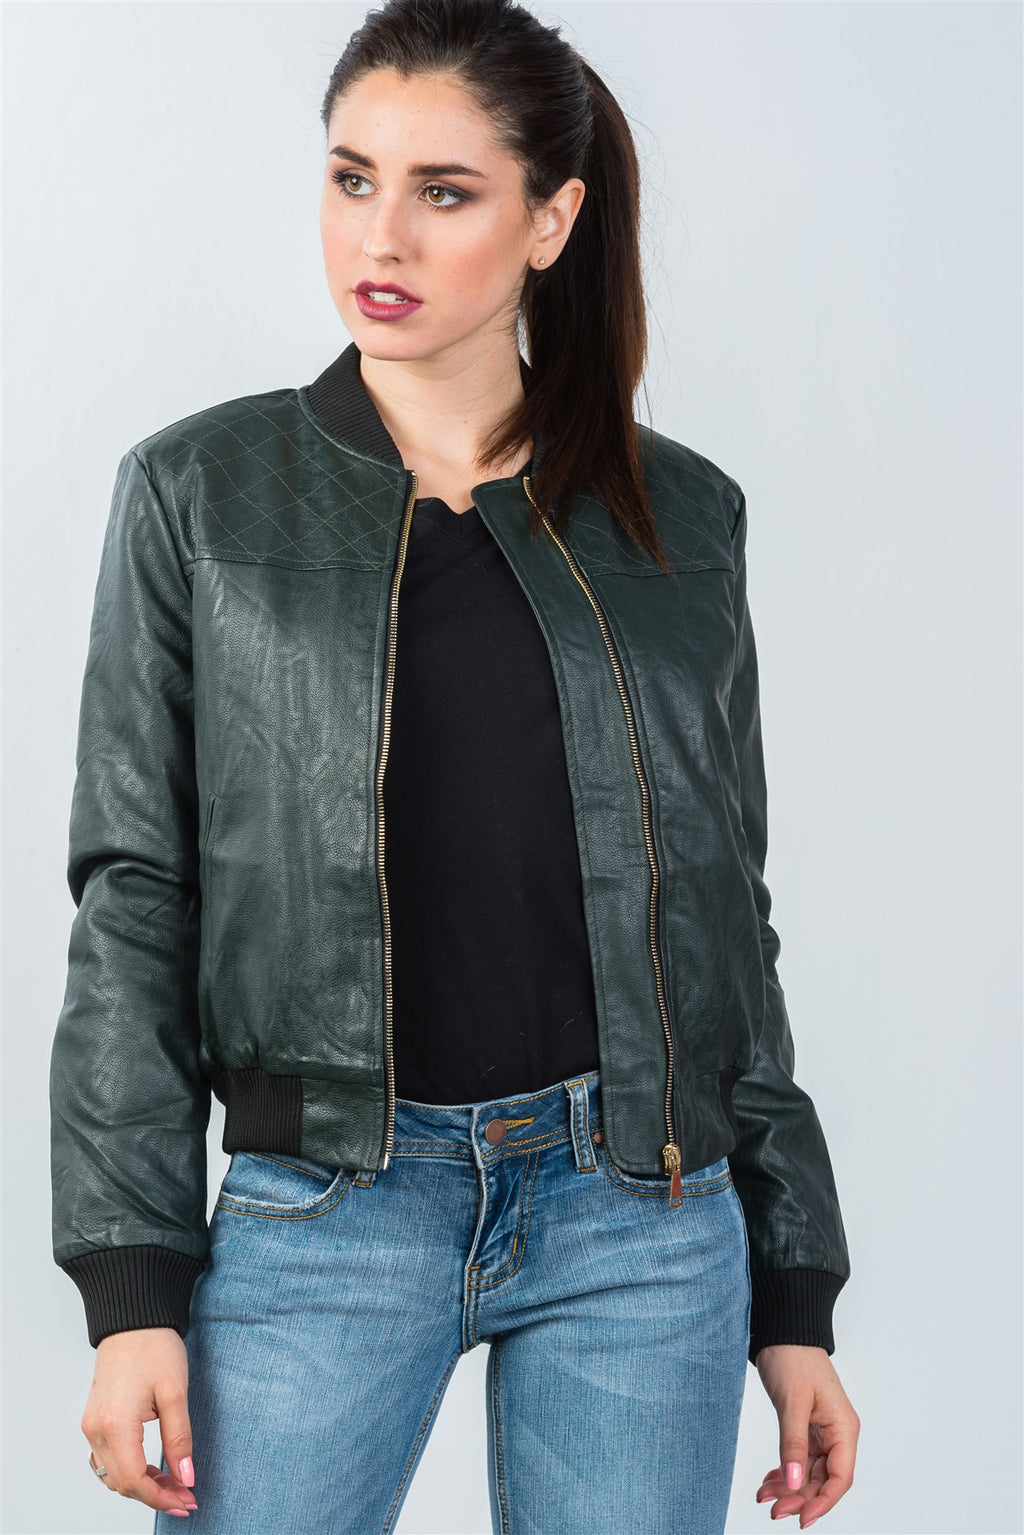 Peacock Pleather Bomber Jacket